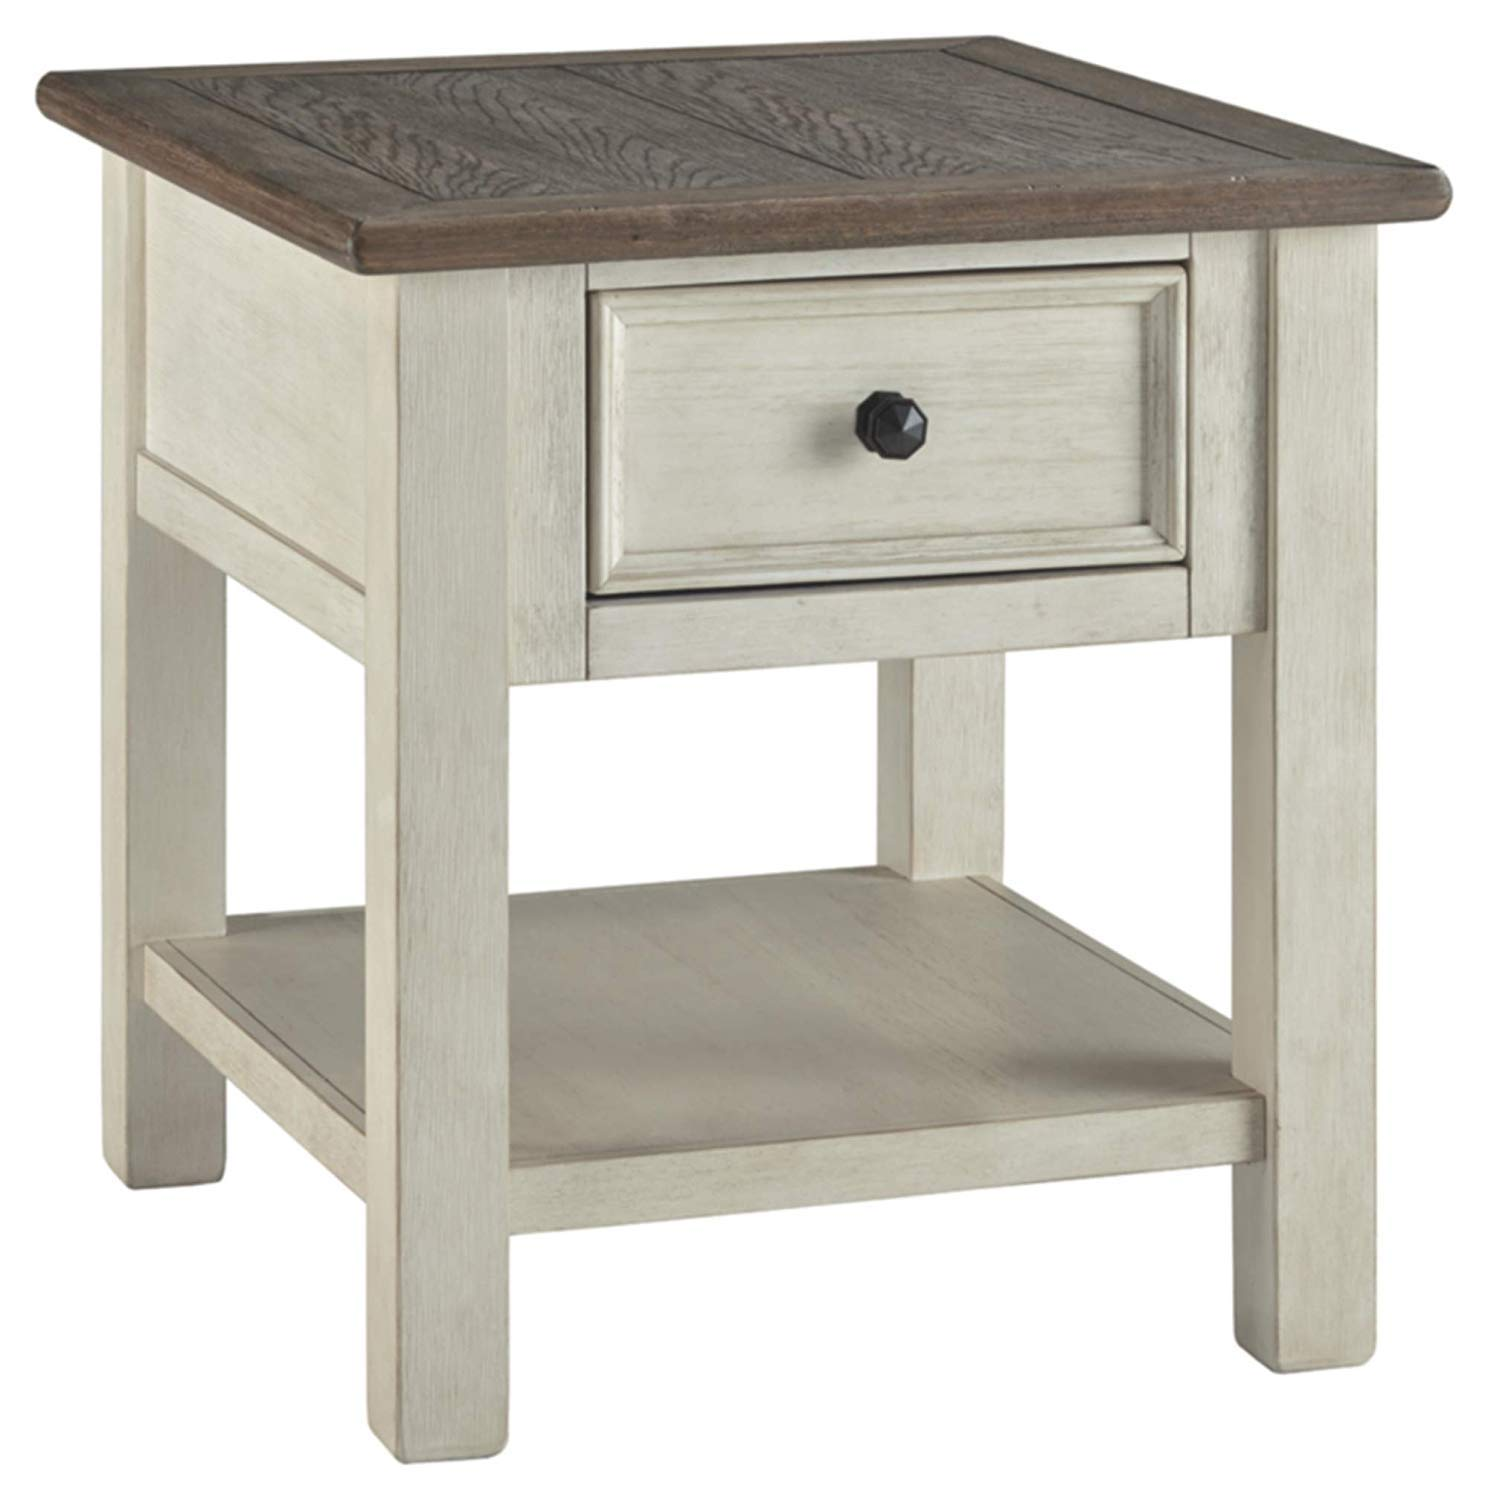 Signature Design by Ashley T637-3 Bolanburg End Table Two-Tone